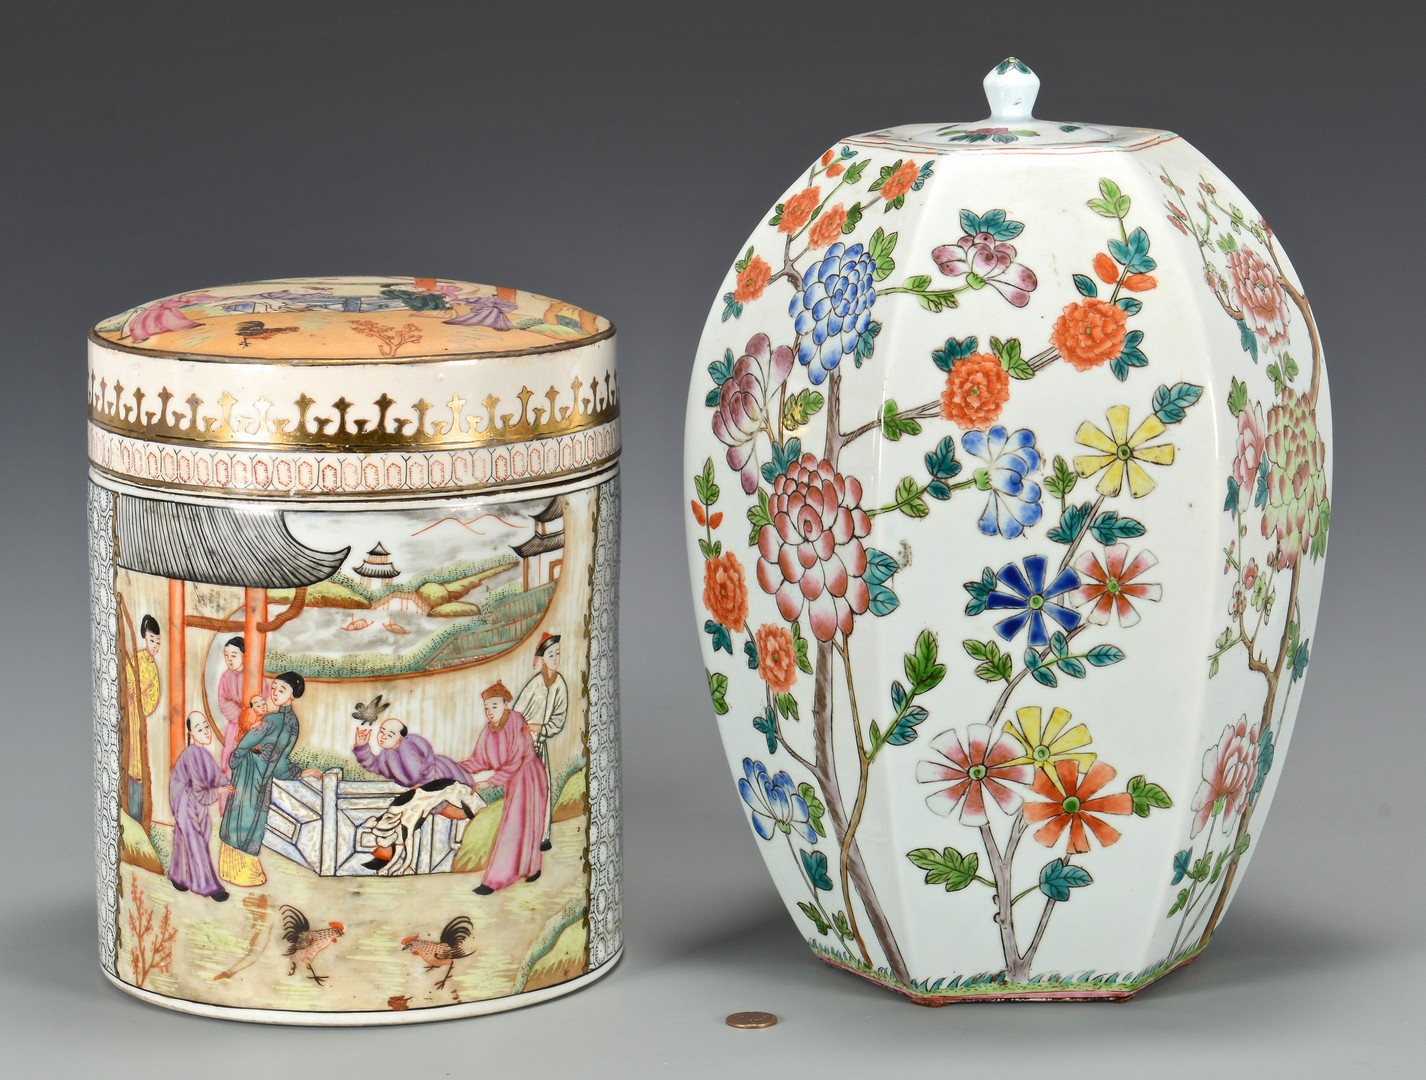 Lot 3832419: Famille Rose Canister w/ Roosters & Hexagonal Jar